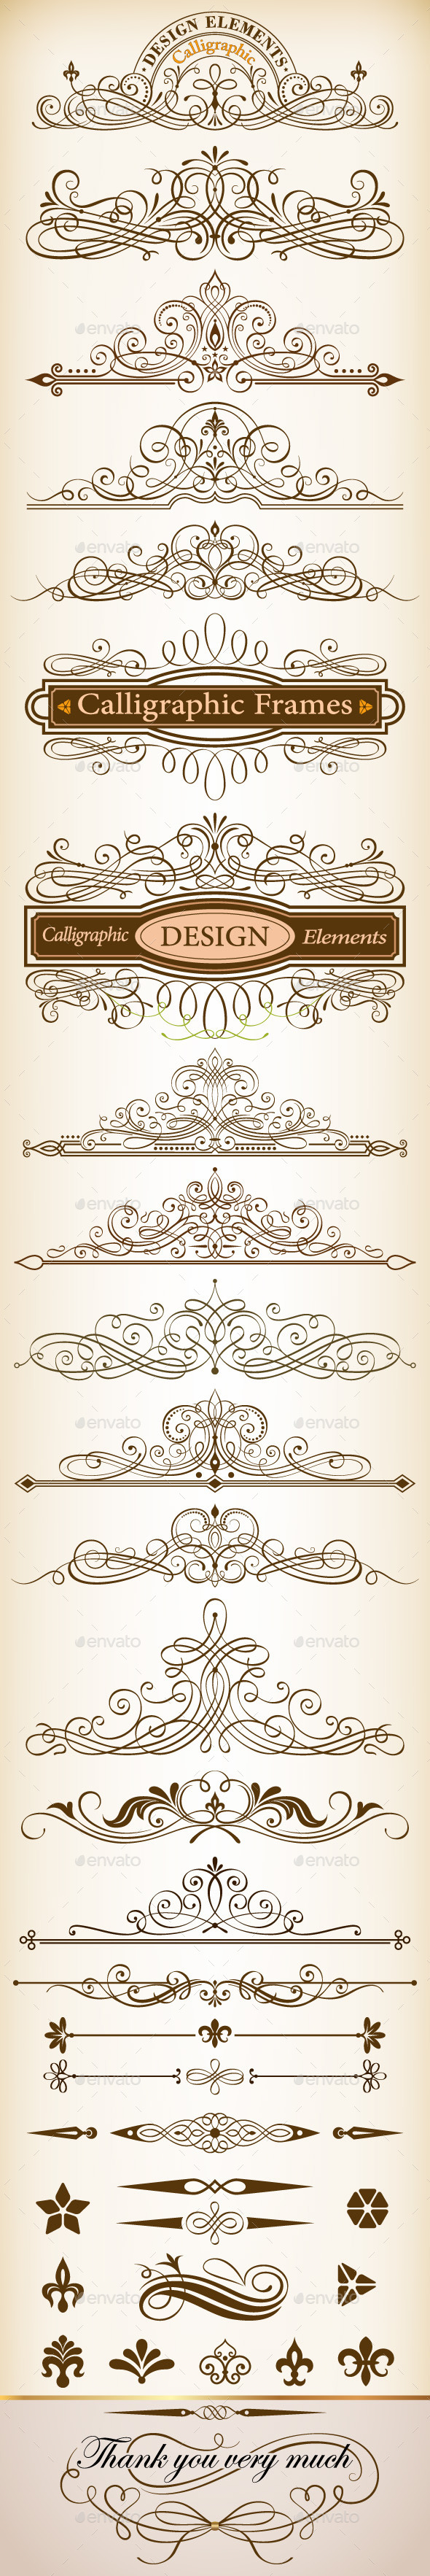 GraphicRiver Calligraphic Design Elements Vector Set 10027795